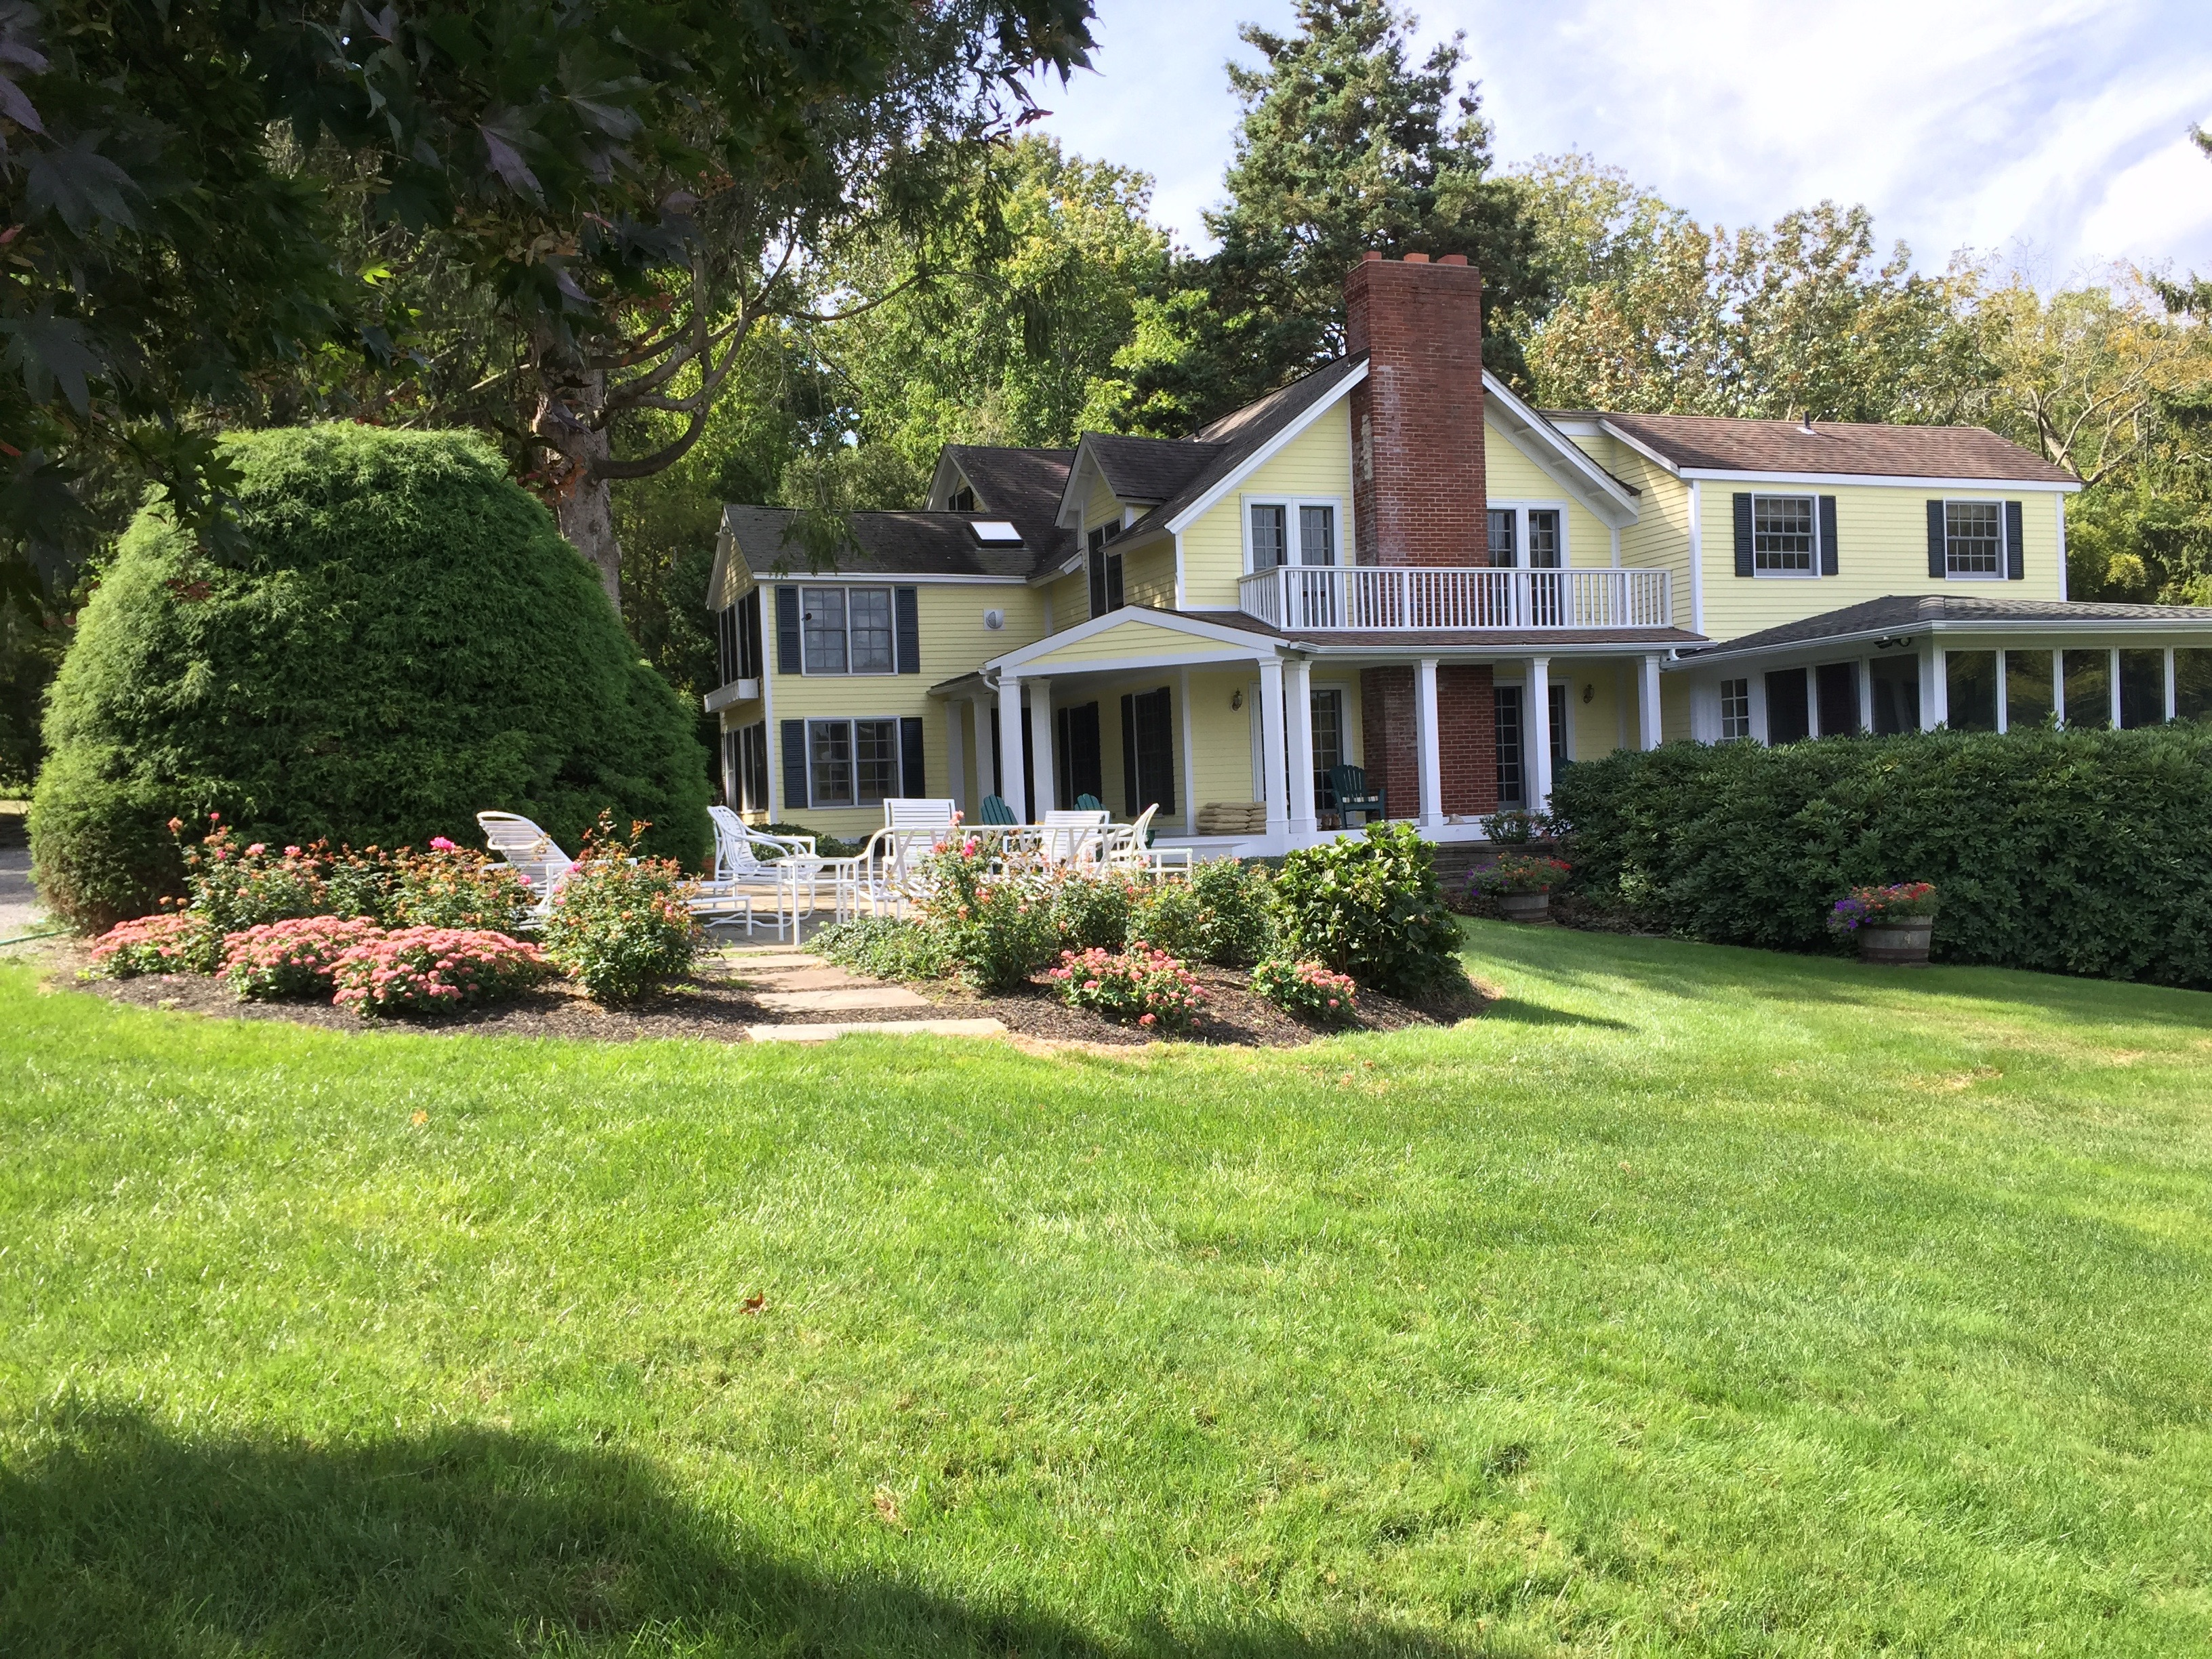 Single Family Home for Sale at Farmhouse 257 Southdown Rd Rd Lloyd Harbor, New York, 11743 United States